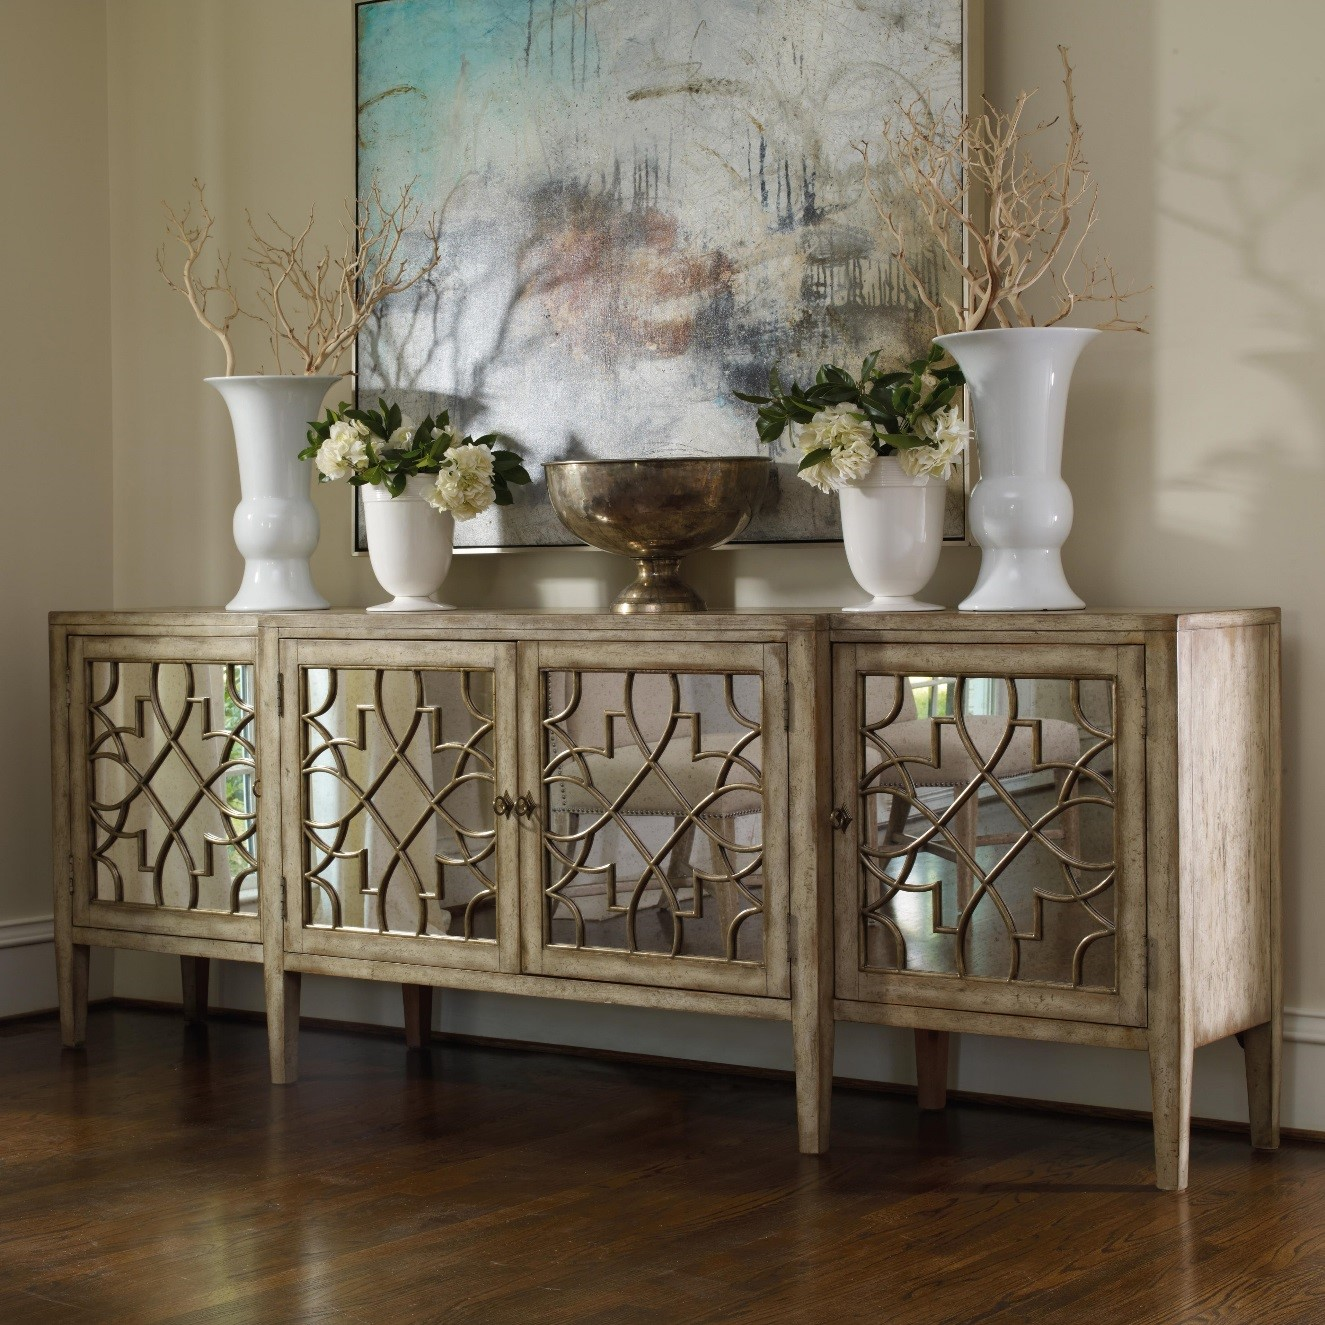 Hallway Console Cabinet Baers Custom Furniture Give Your Hallway A Fresh New Look With